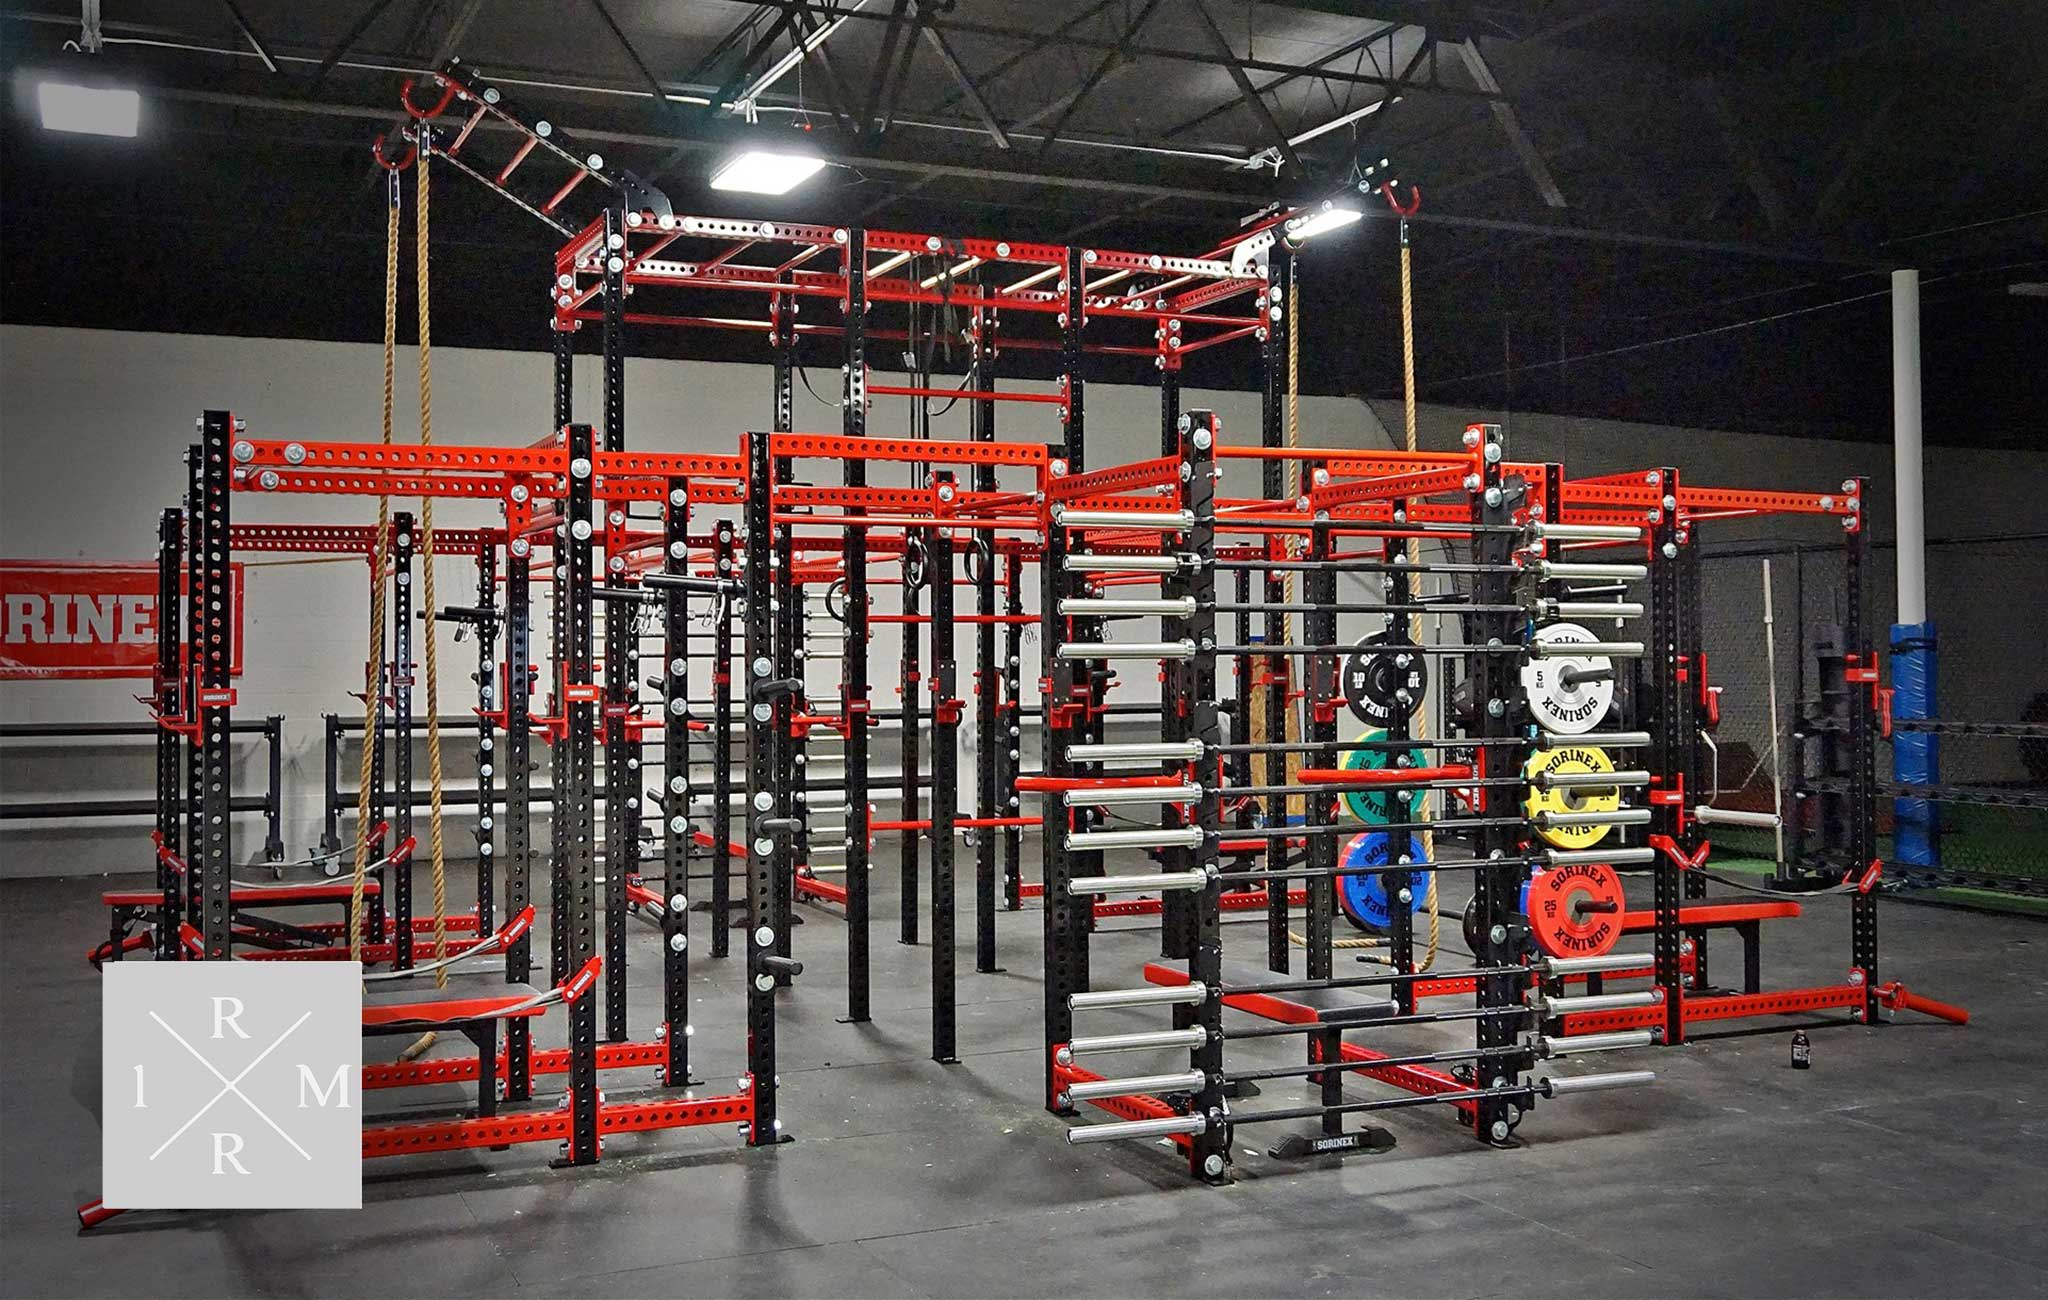 1RMR fitness Private Training facility Sorinex